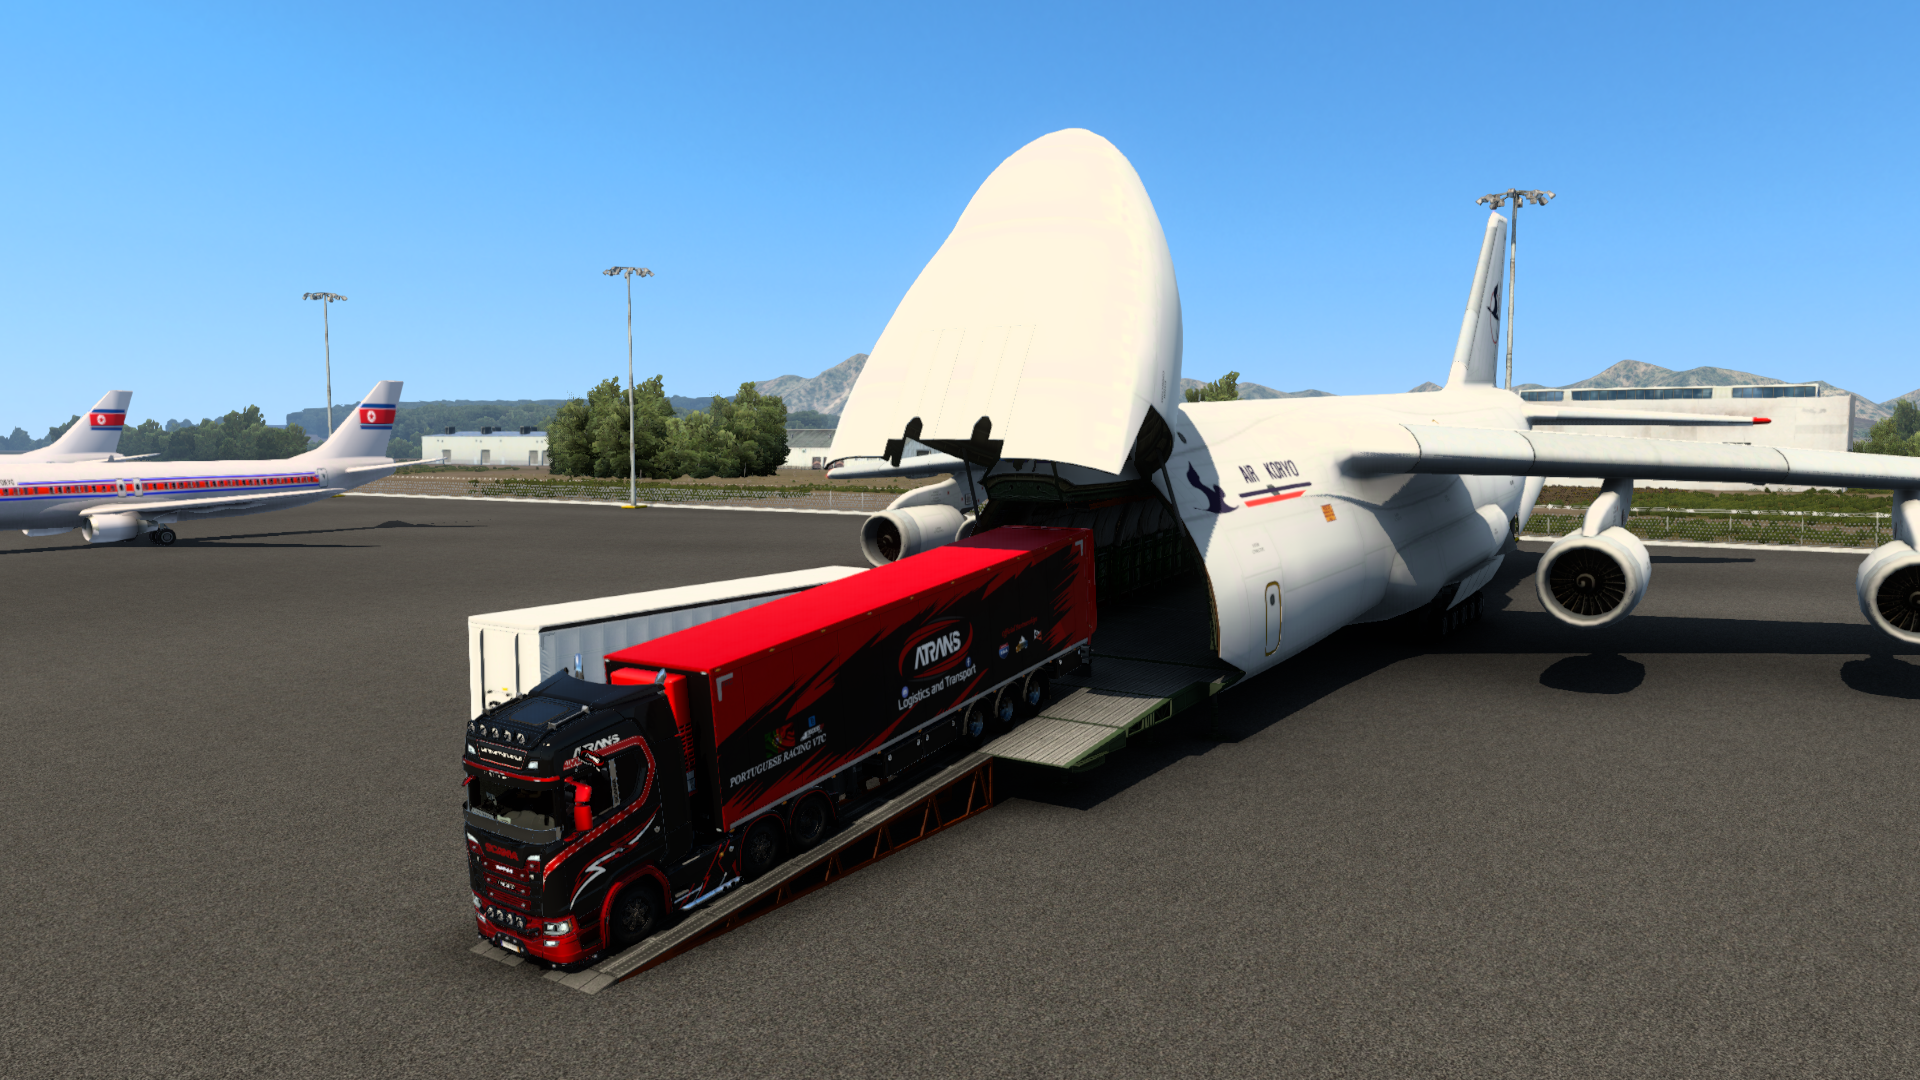 ets2_20210903_113647_00.png